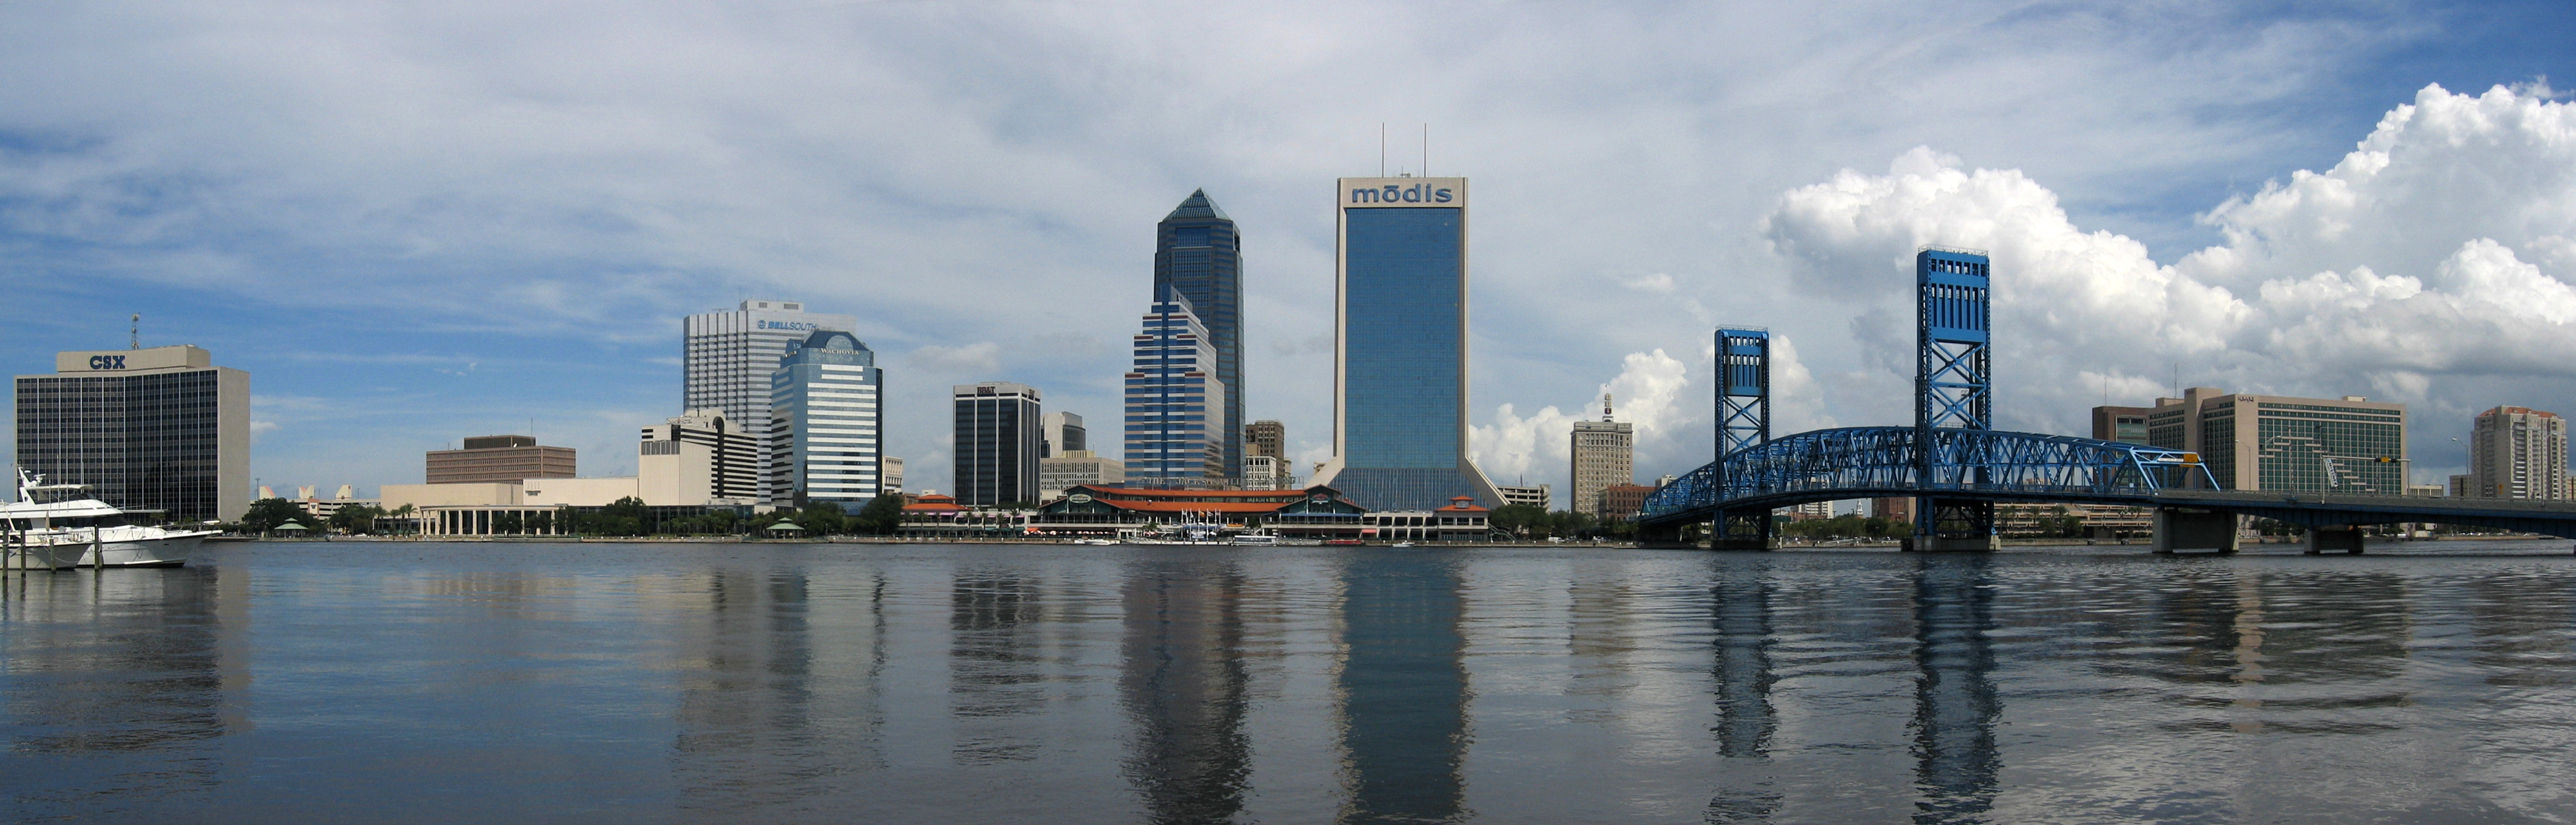 Wallpapers Jacksonville 3748x1200